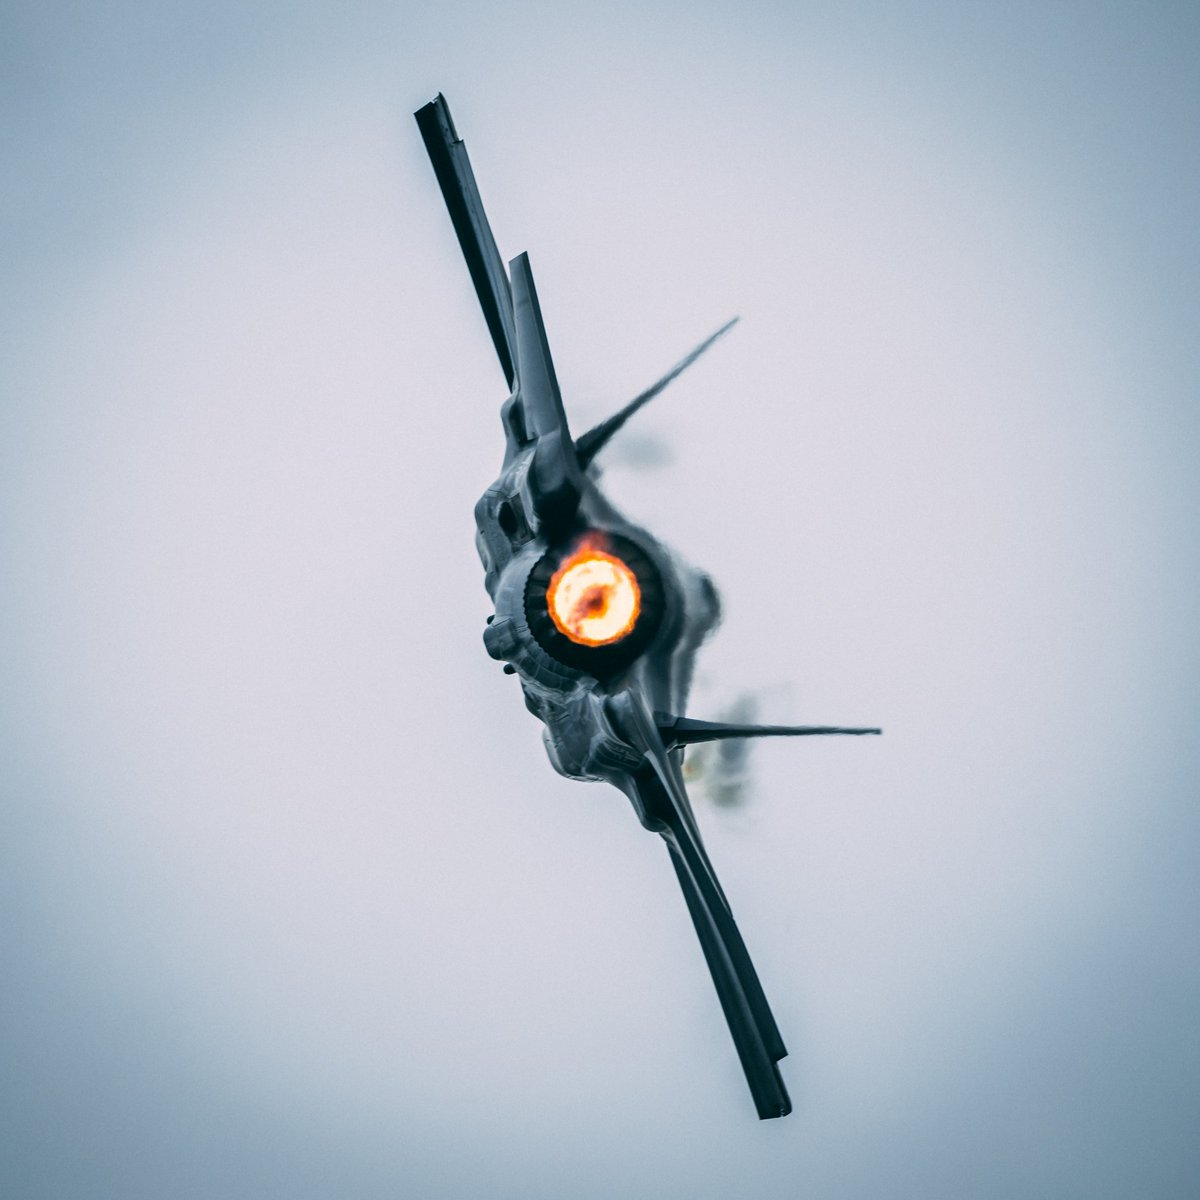 The F-35A Lightning II during the Heart of Texas Airshow April 7, 2019. The F-35 Demo Team performed their second show of the season bringing their new demonstration to central Texas. (U.S. Air Force  by Senior Airman Alexander Cook) <br>http://pic.twitter.com/d5ECzrPWkY